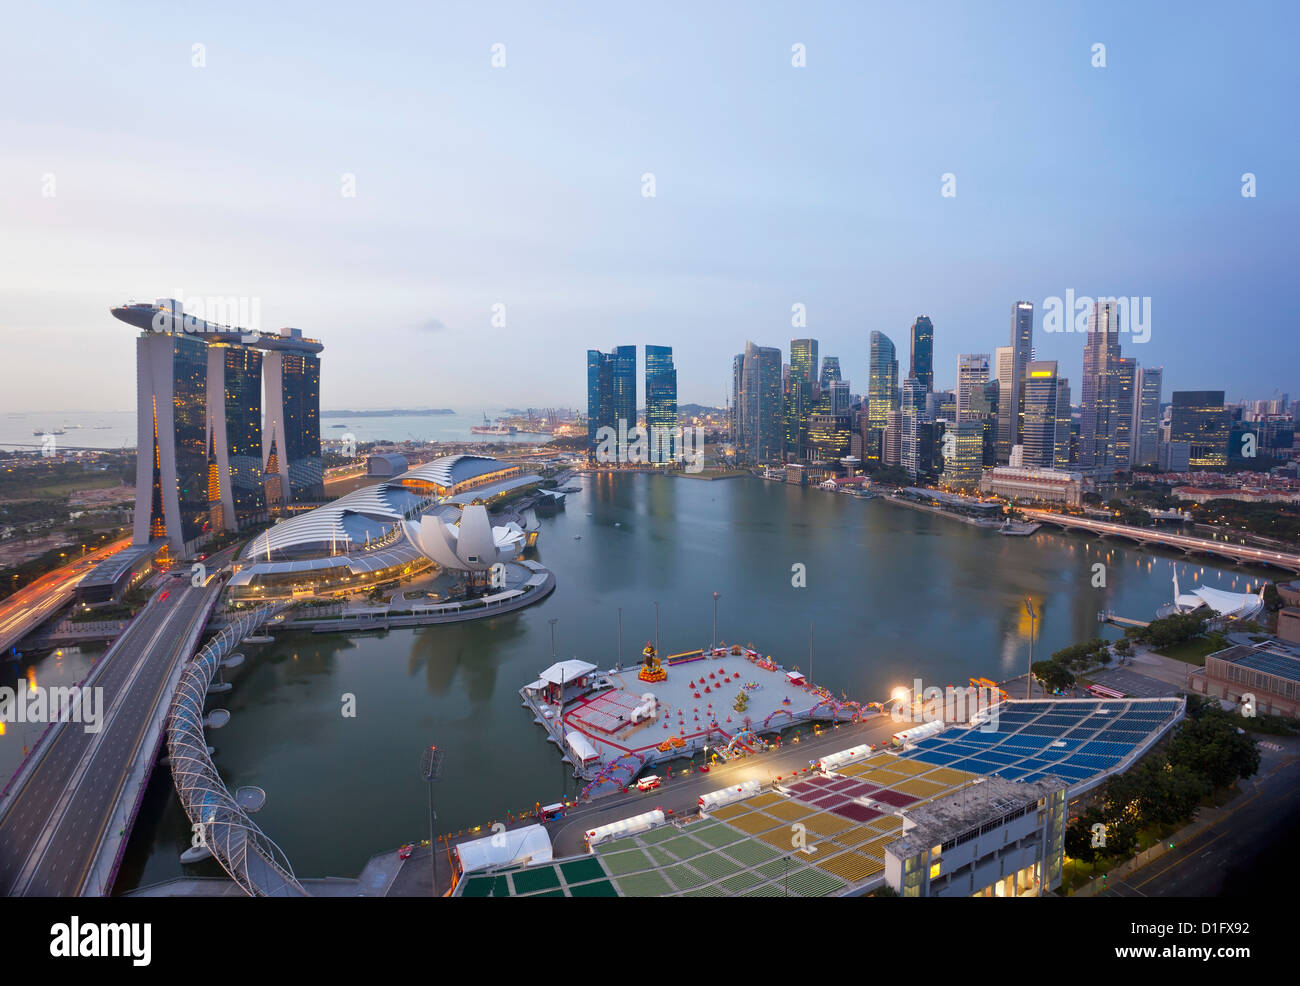 The Helix Bridge and Marina Bay Sands, elevated view over  Singapore, Marina Bay, Singapore, Southeast Asia, Asia - Stock Image